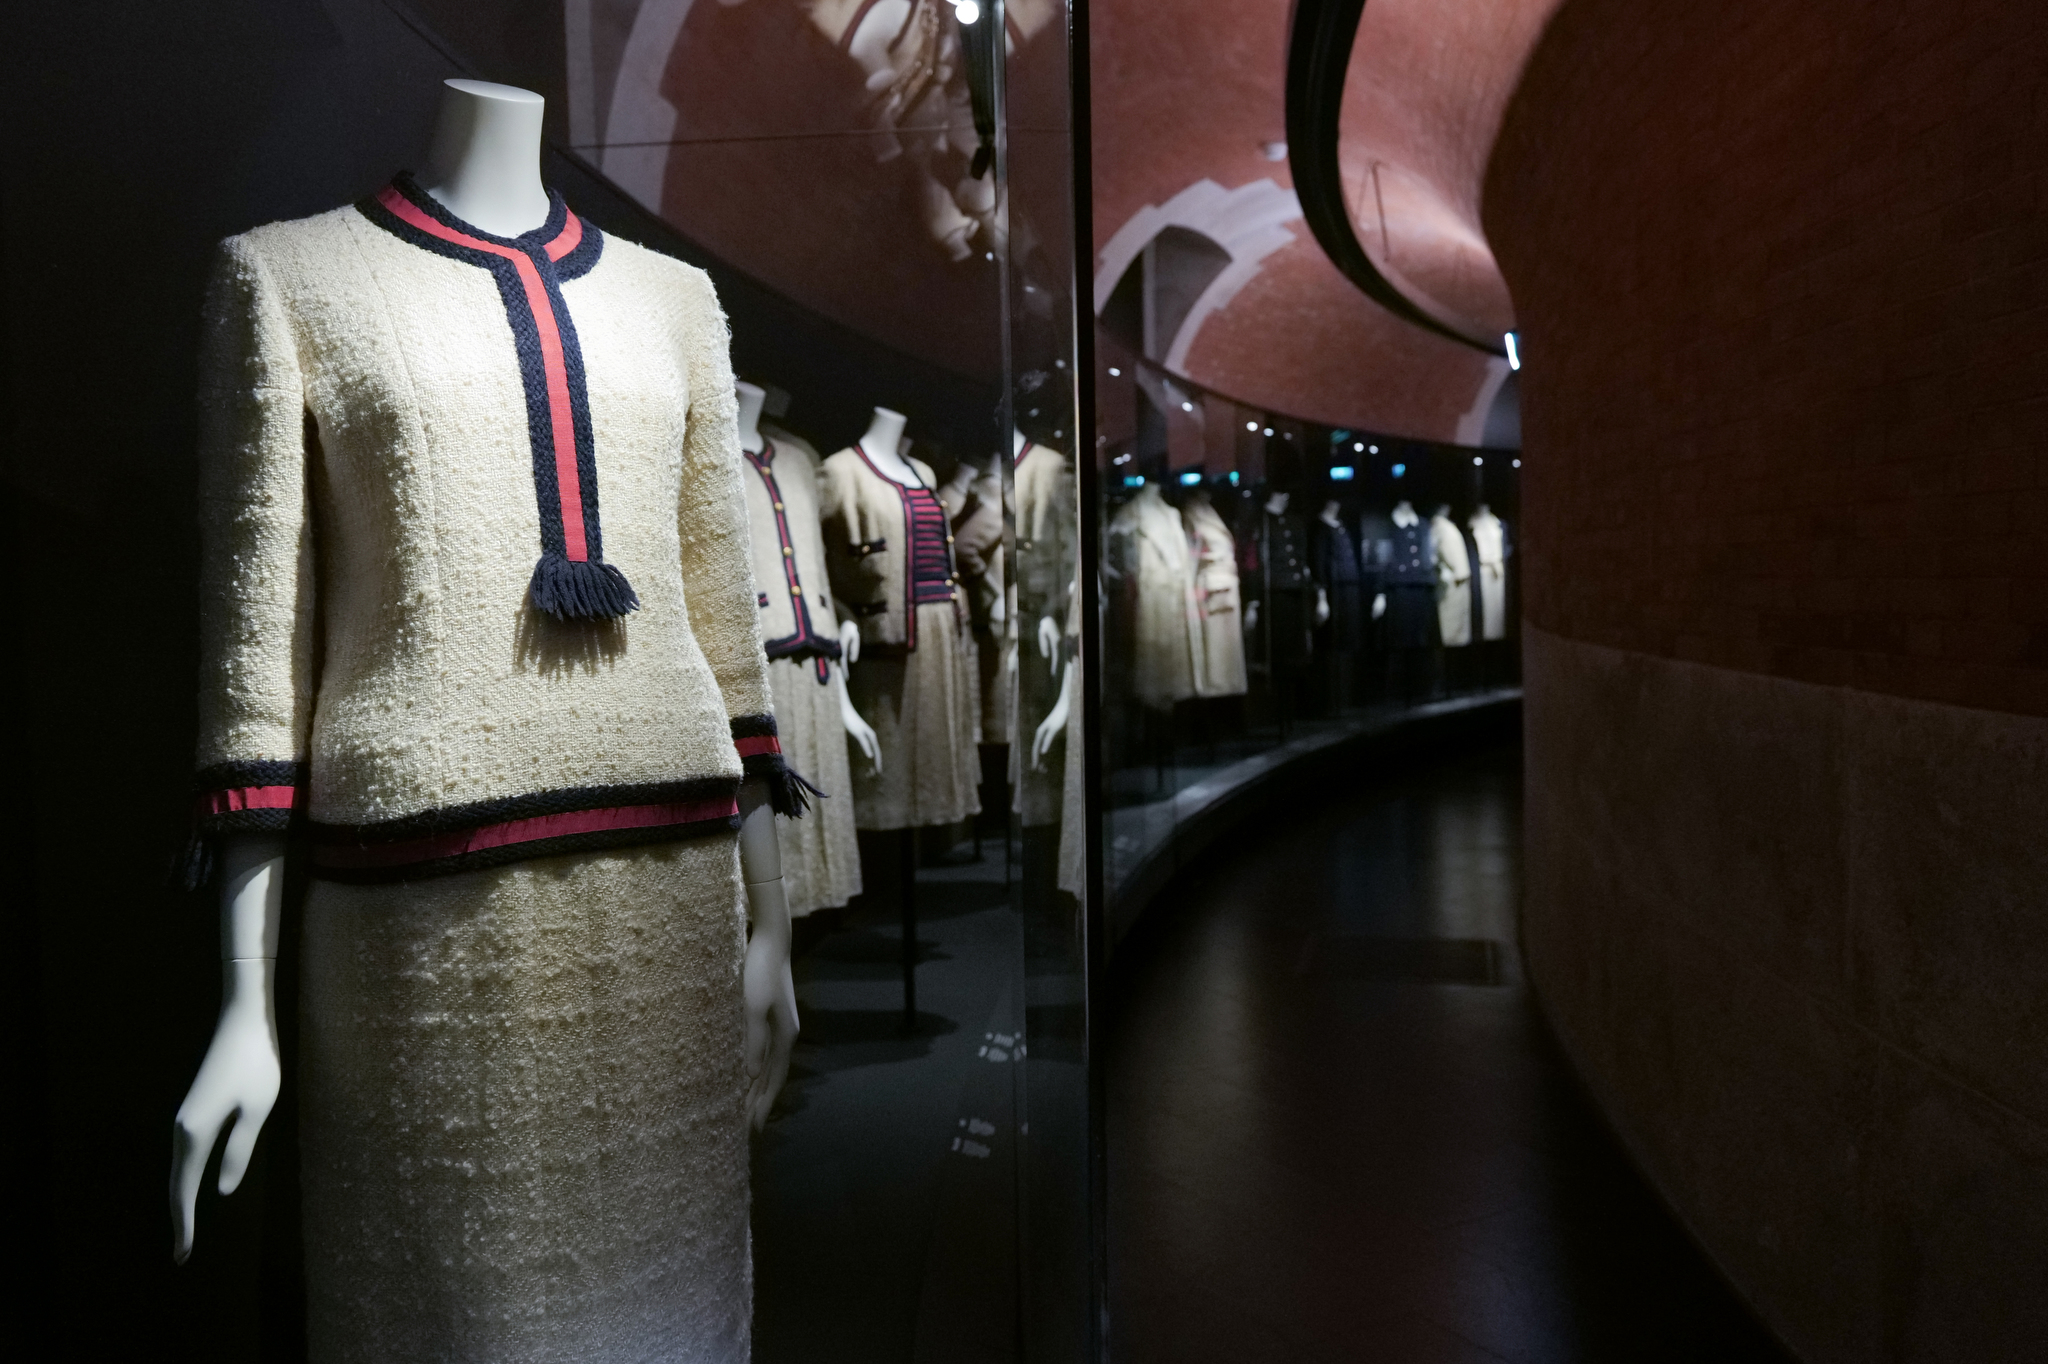 """Caption: Chanel tweed suits are displayed in the new """"Gabrielle Chanel Galleries"""" at Palais Galliera."""